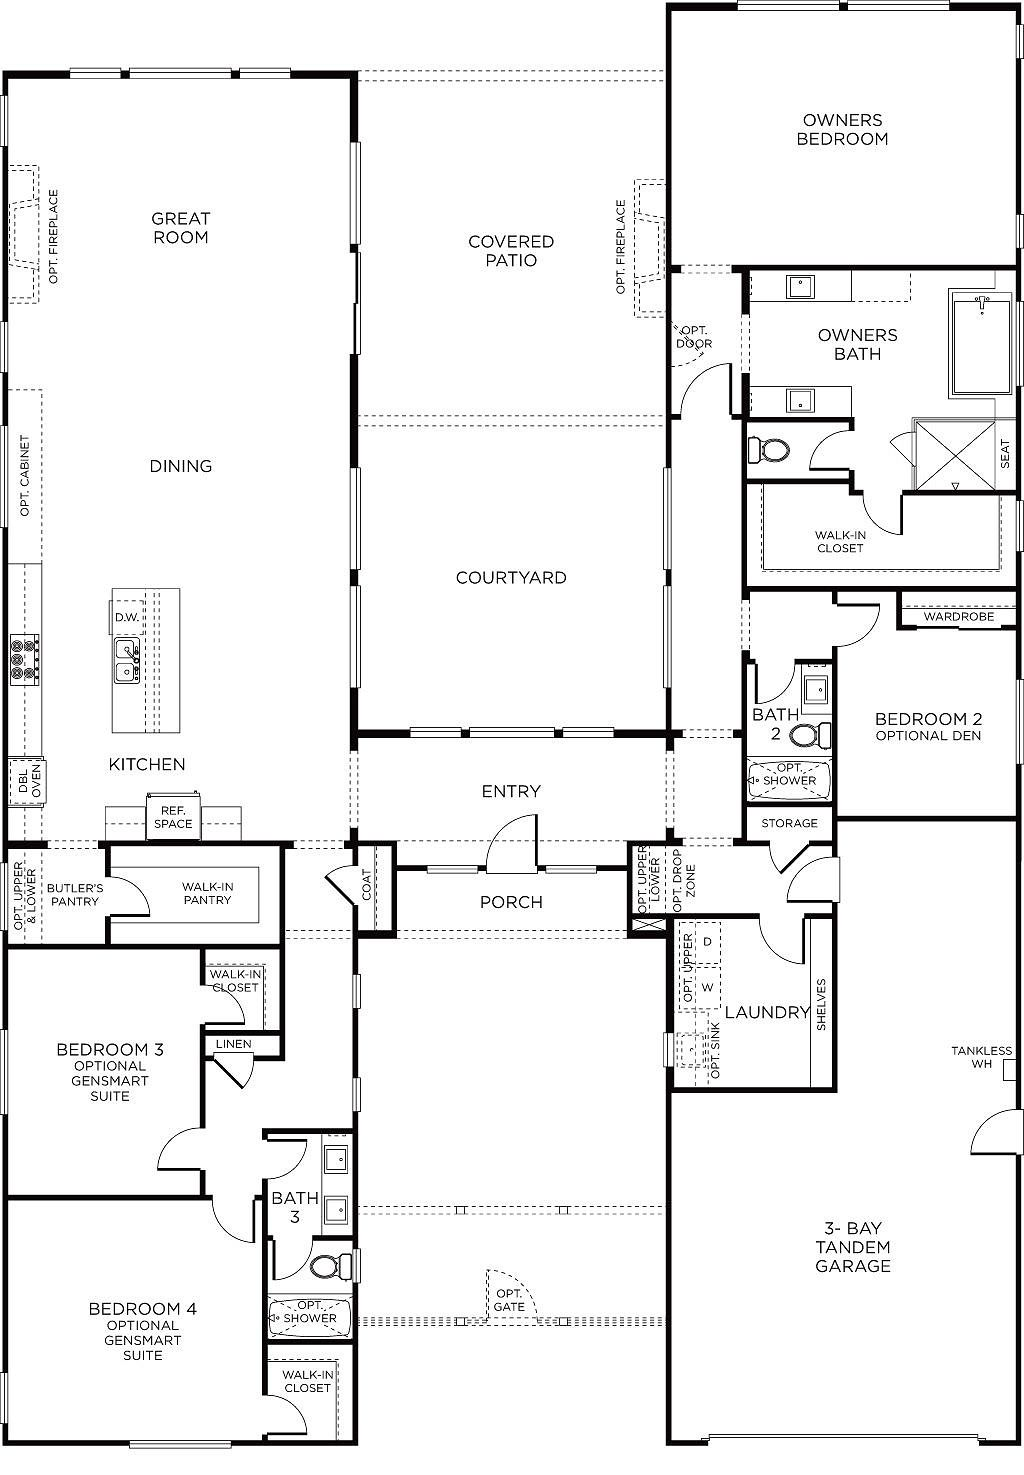 Plan 1 Pardee Homes Home Design Floor Plans Courtyard House Plans Container House Plans